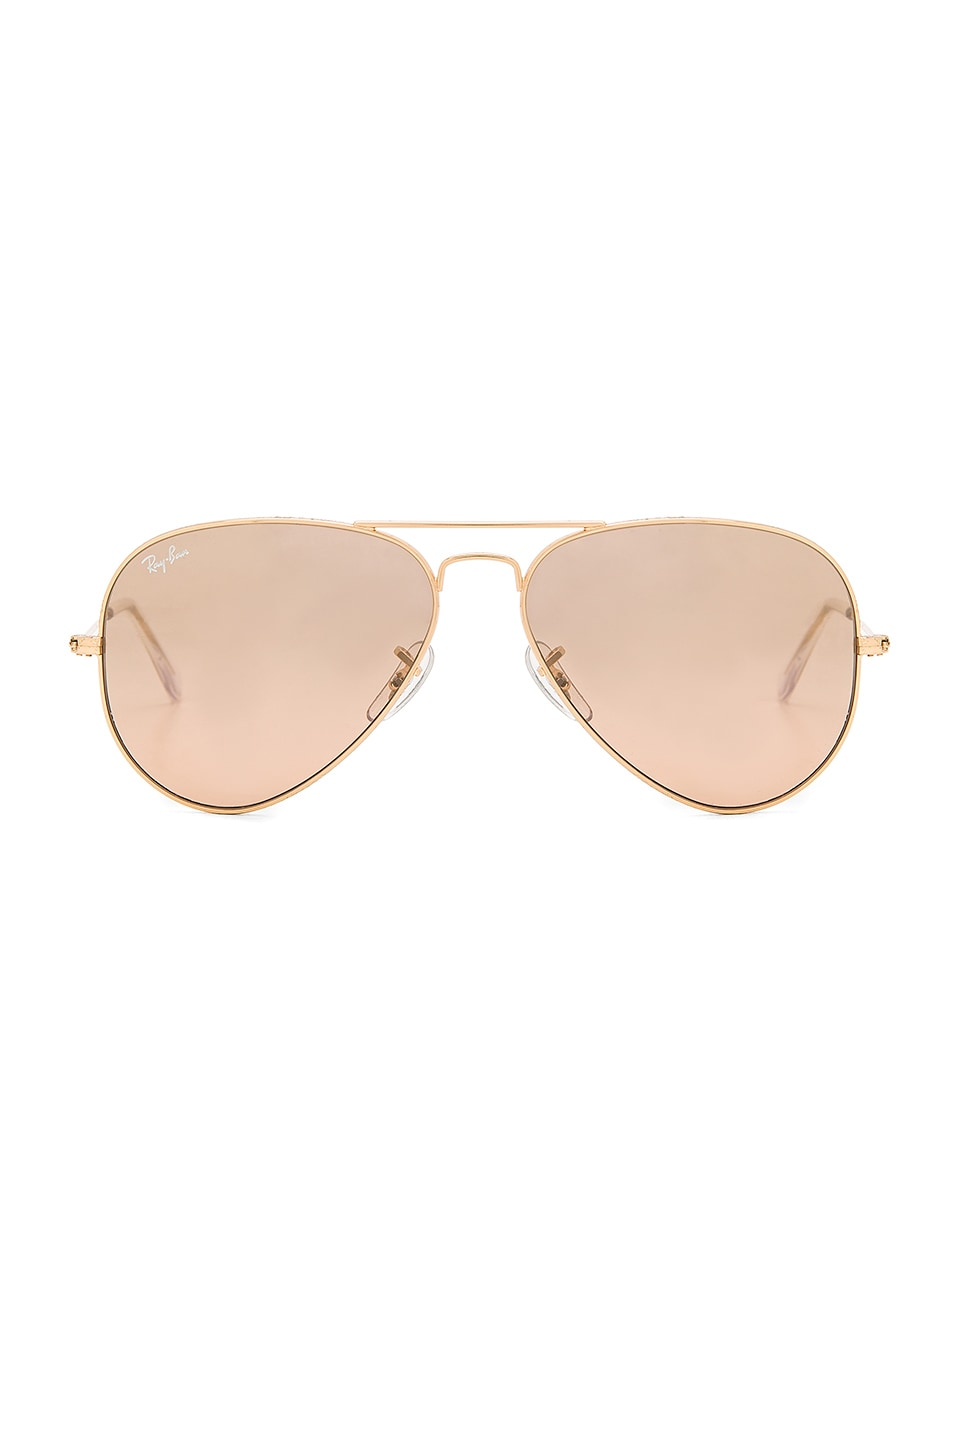 Ray-Ban Aviator in Gold & Crystal Brown Pink Silver Mirror